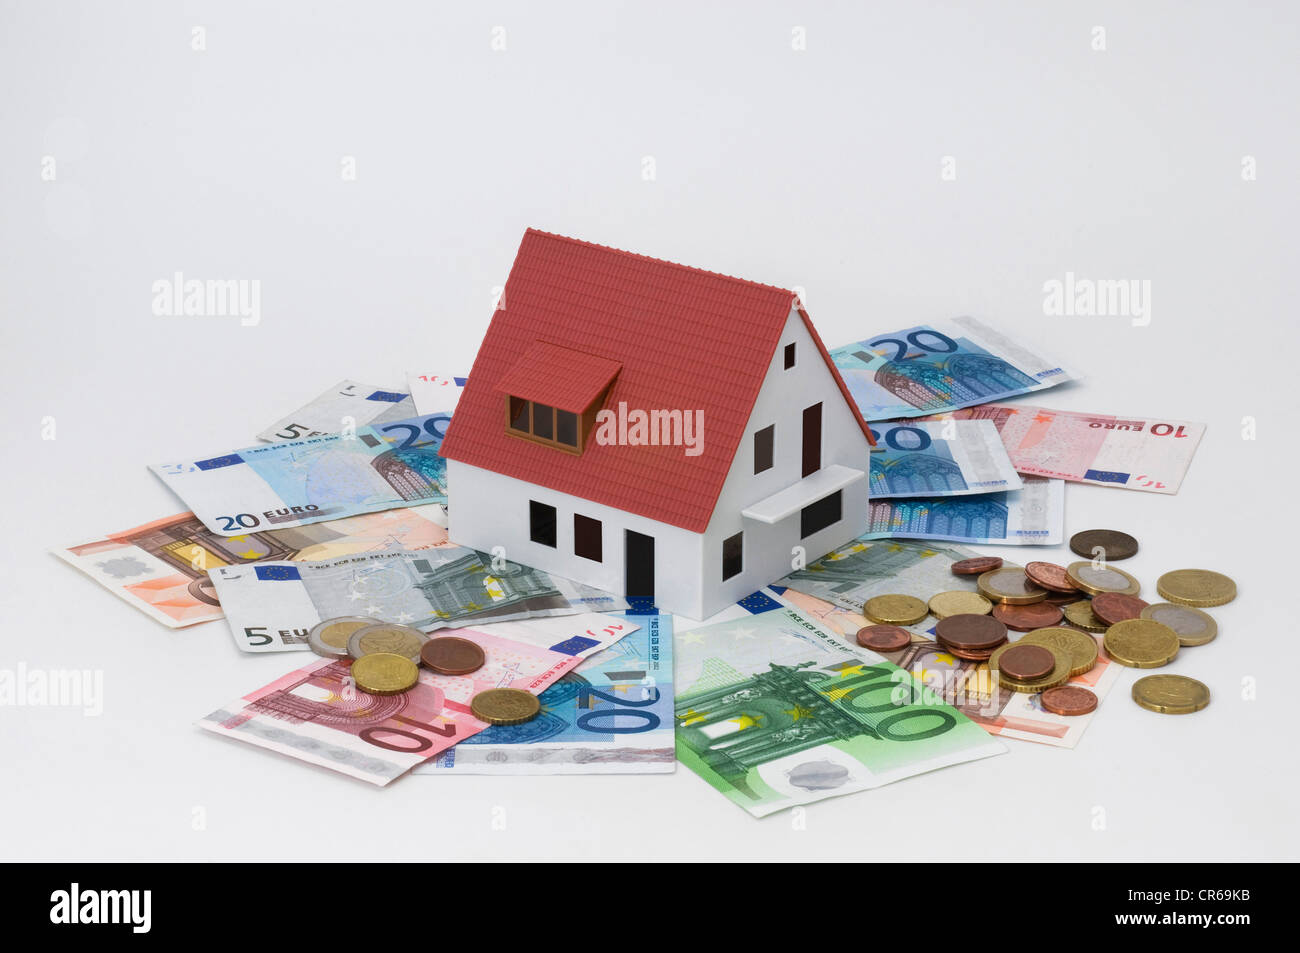 Miniature house surrounded by banknotes and coins, symbolic image for house building finance, investment or private - Stock Image